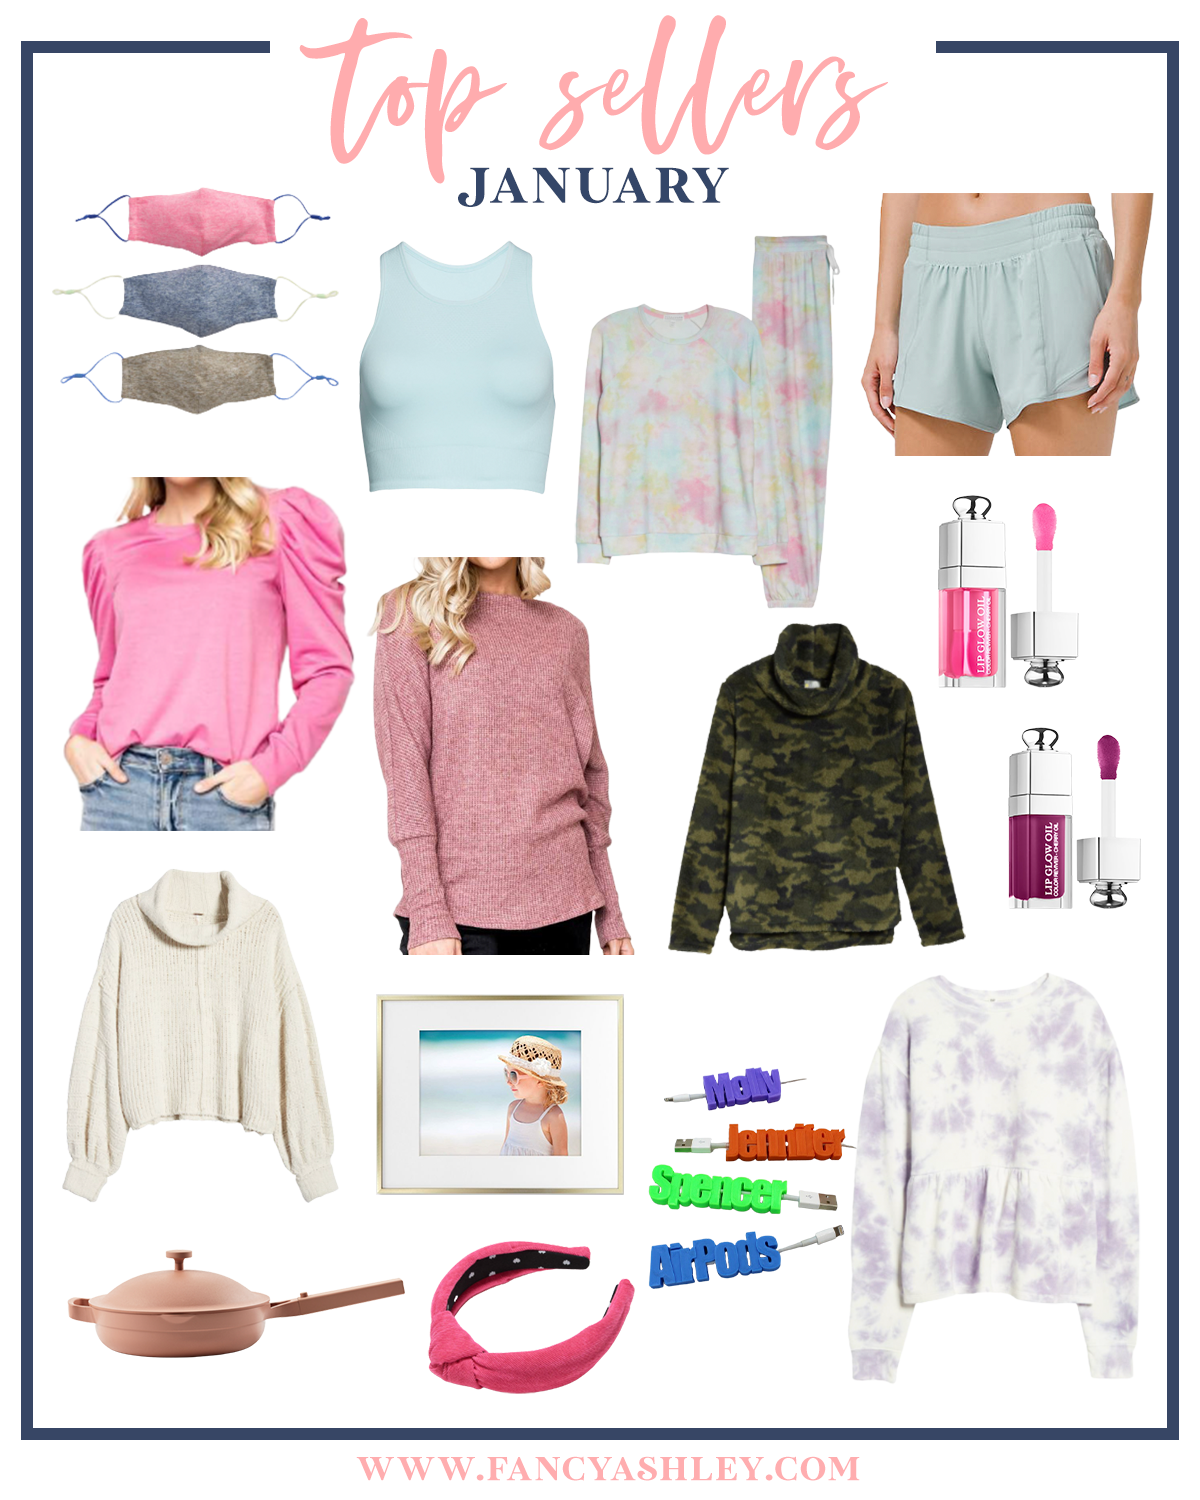 January Top Sellers by popular Houston life and style blog, Fancy Ashley: collage image of face masks, blue tank top, tie dye loungewear set, blue shorts, pink puff sleeve top, pink mock neck sweater, fleece camo cowl sweater, cream turtleneck sweater, pink knot headband, purple and white tie dye peplum top, gold picture frame, name hair clips, Everyday pan, and lip oil.